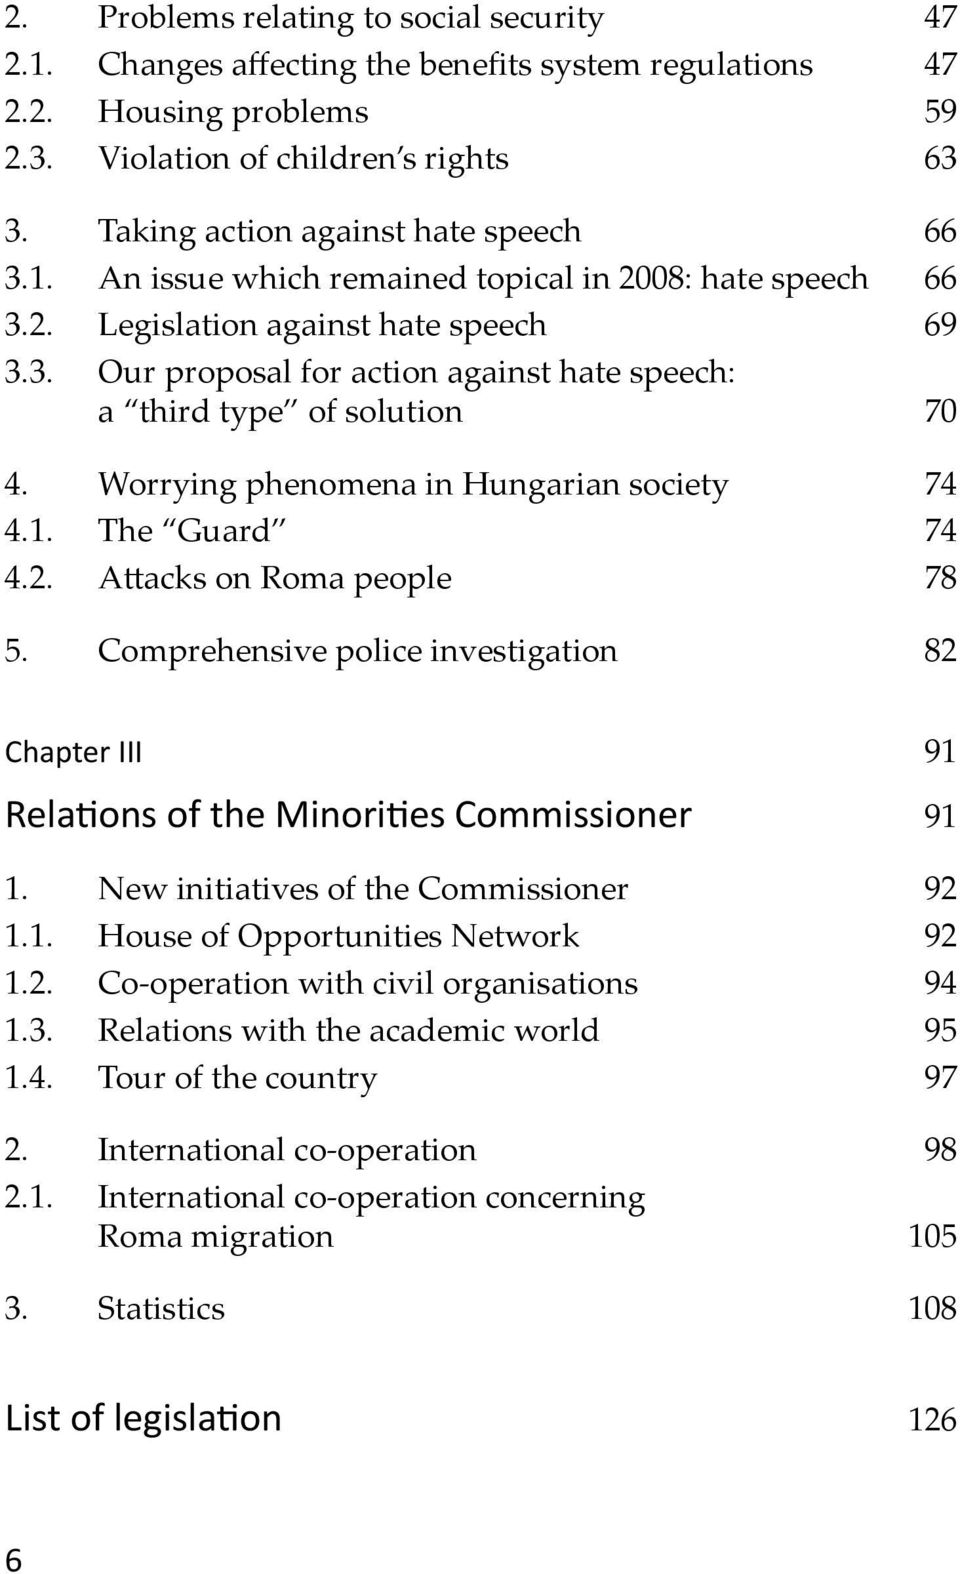 Worrying phenomena in Hungarian society 74 4.1. The Guard 74 4.2. Attacks on Roma people 78 5. Comprehensive police investigation 82 Chapter III 91 Relations of the Minorities Commissioner 91 1.